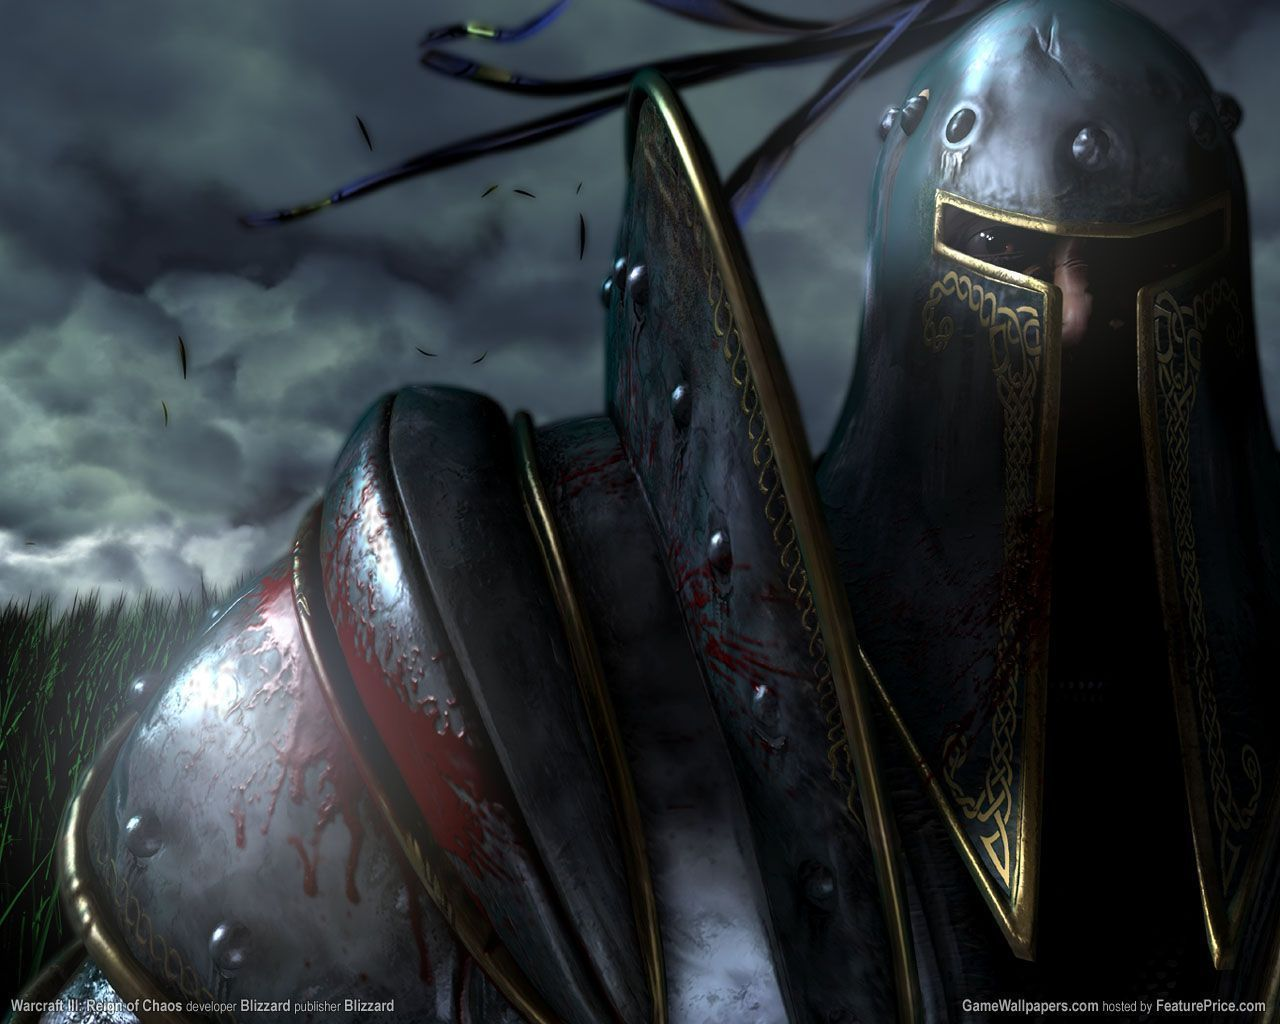 Warcraft Iii Reign Of Chaos Wallpapers 1280 1024 Warcraft 3